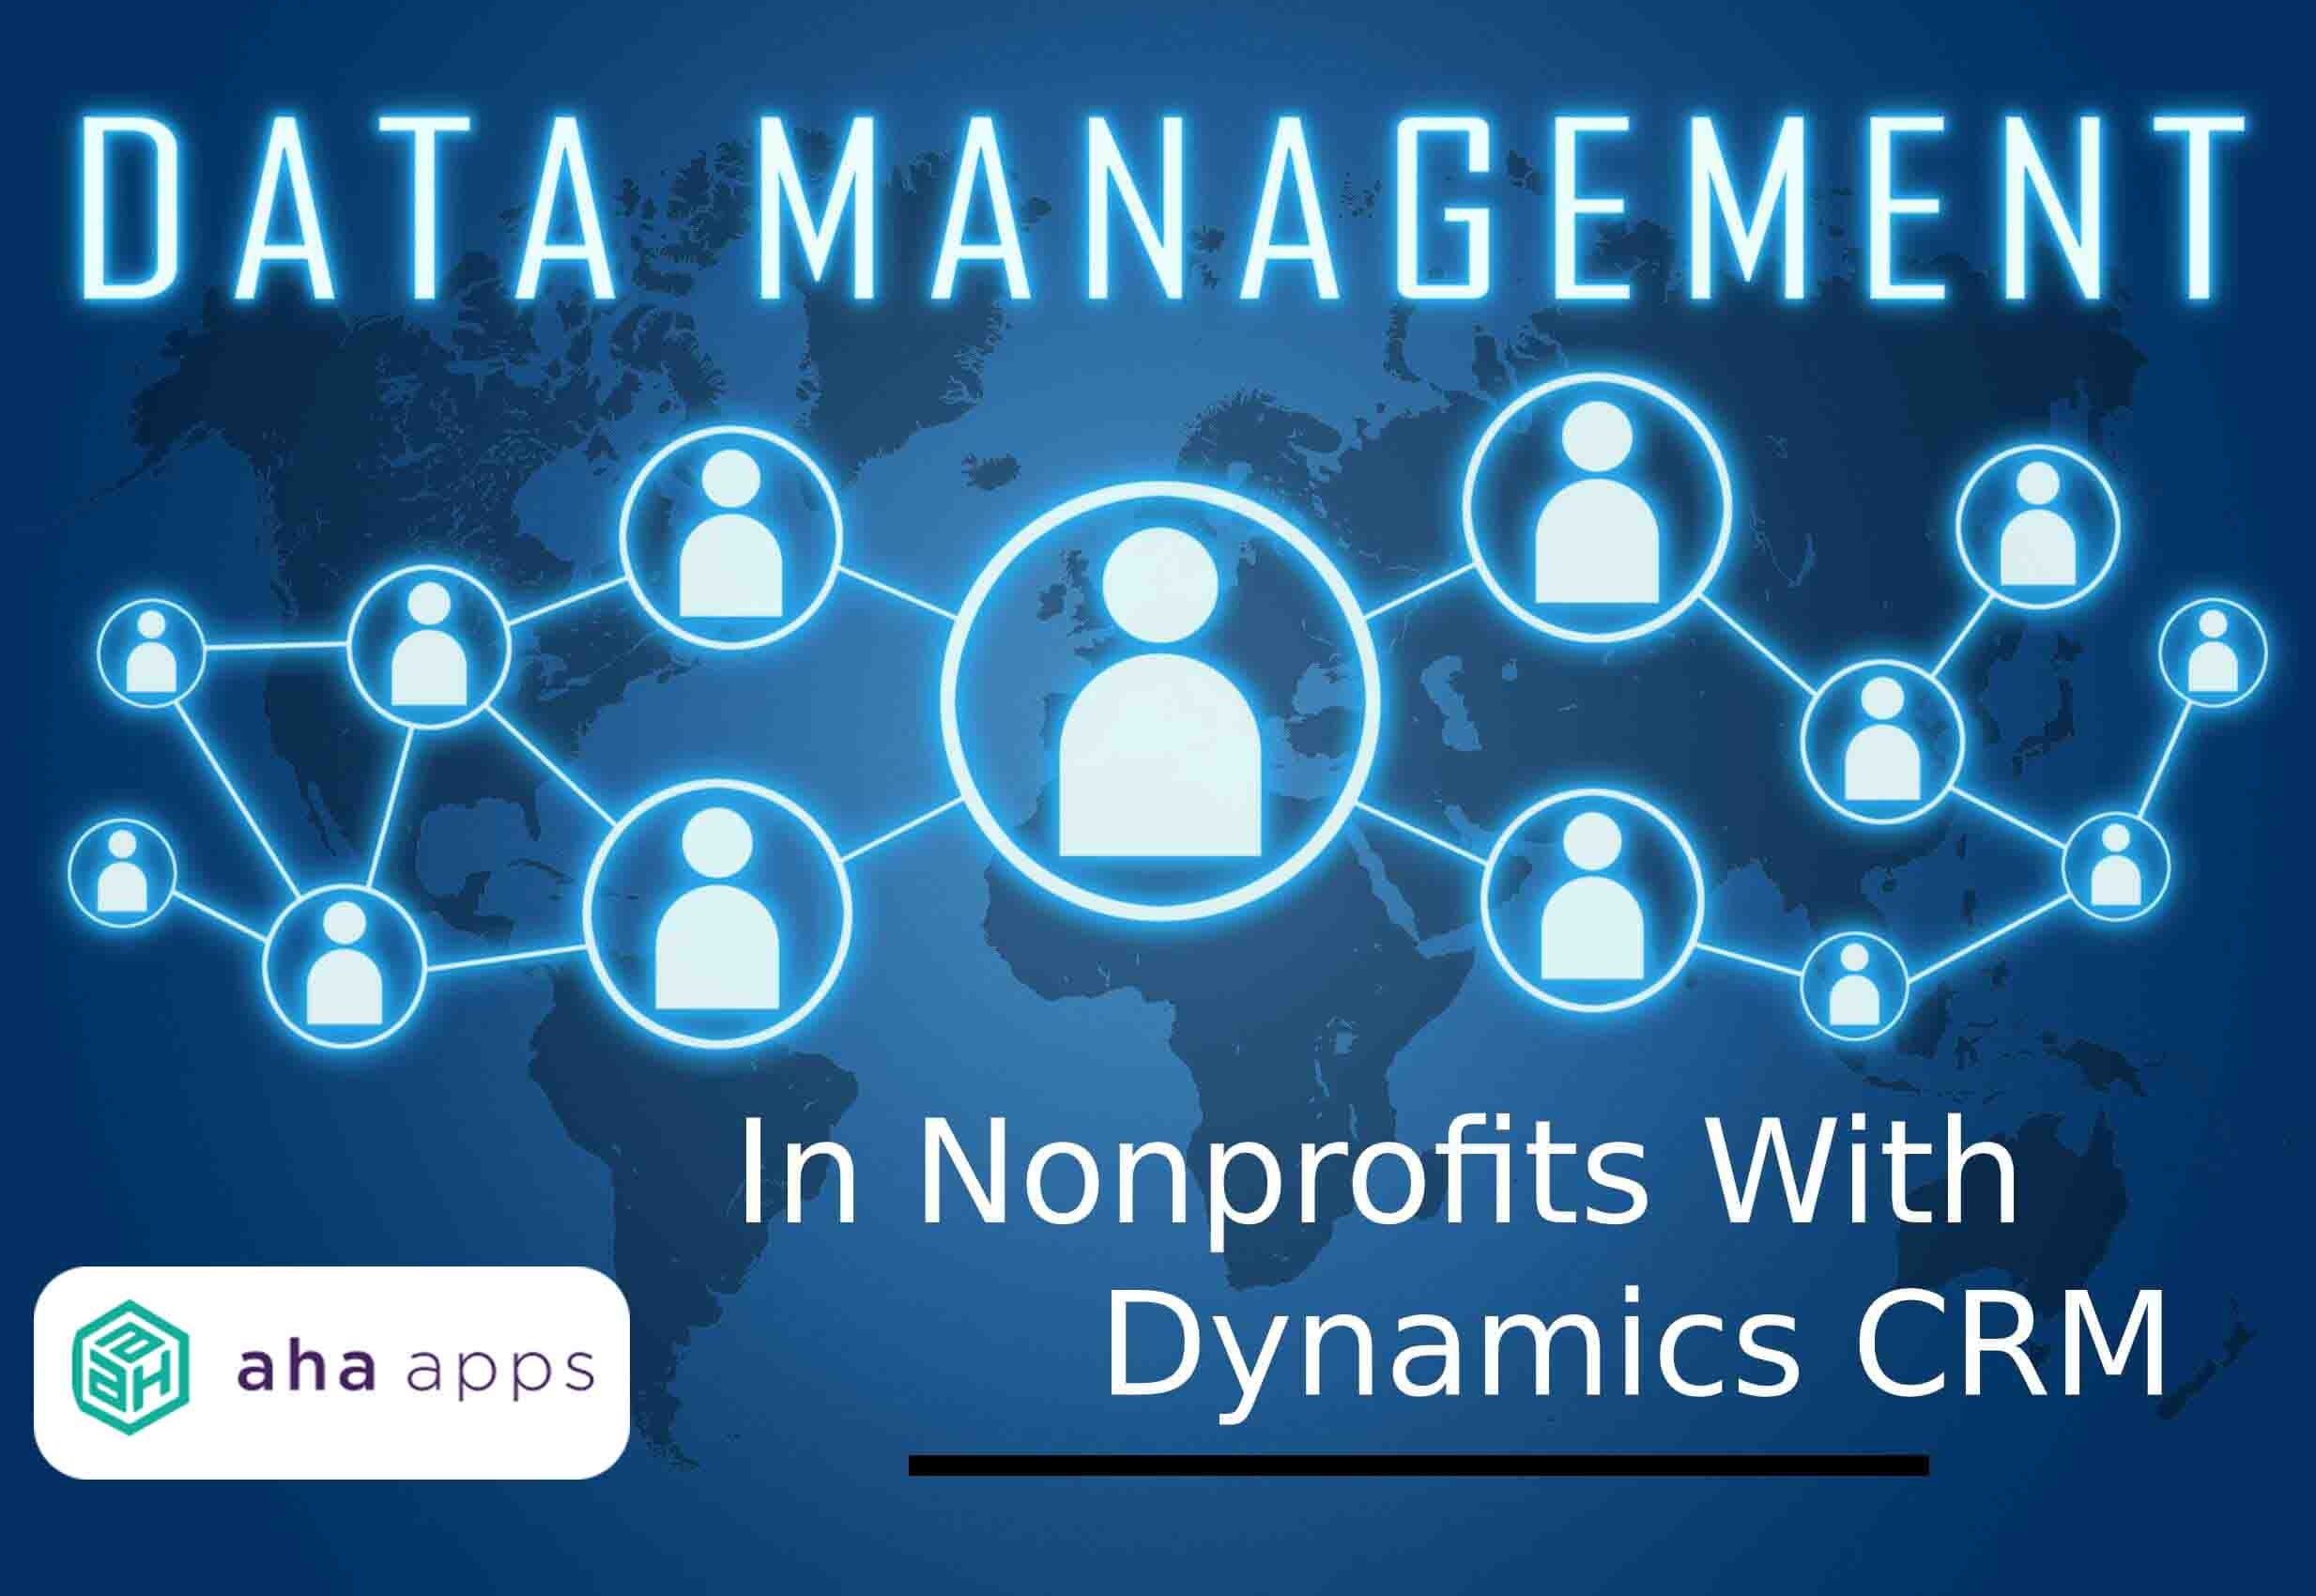 Data Management in Nonprofits with Dynamics CRM